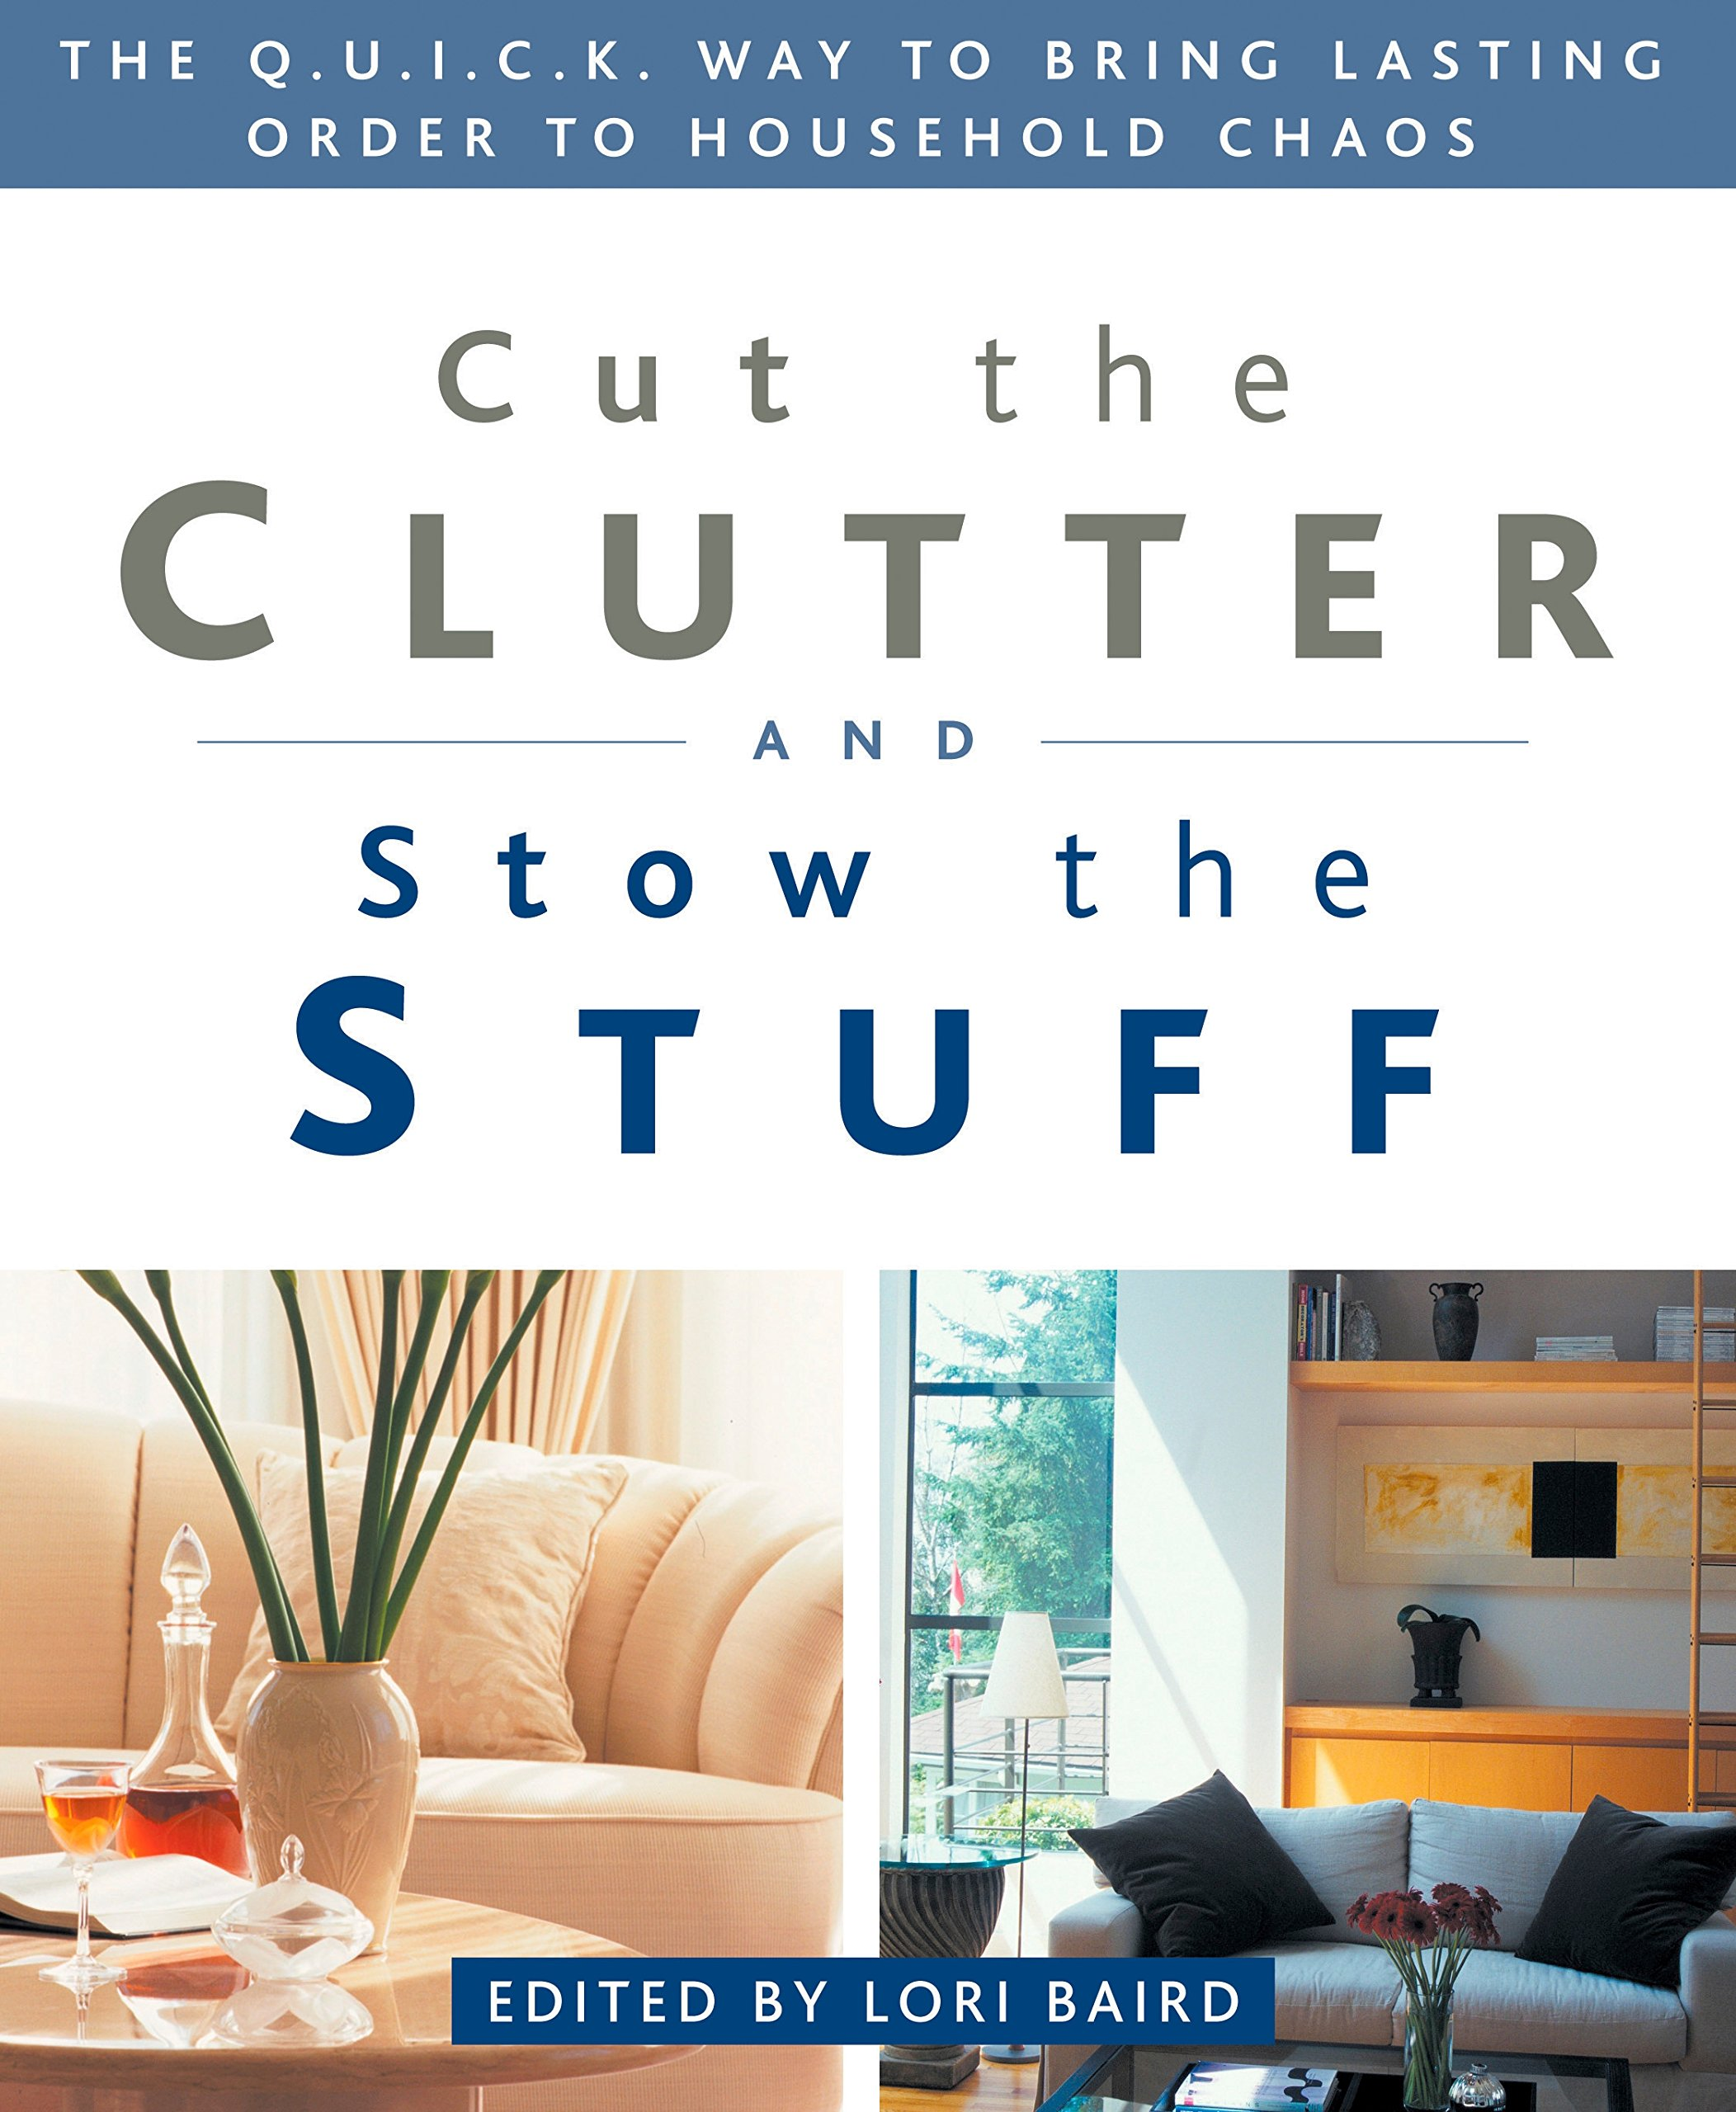 Household Chaos Makes Bringing Up >> Cut The Clutter And Stow The Stuff The Q U I C K Way To Bring